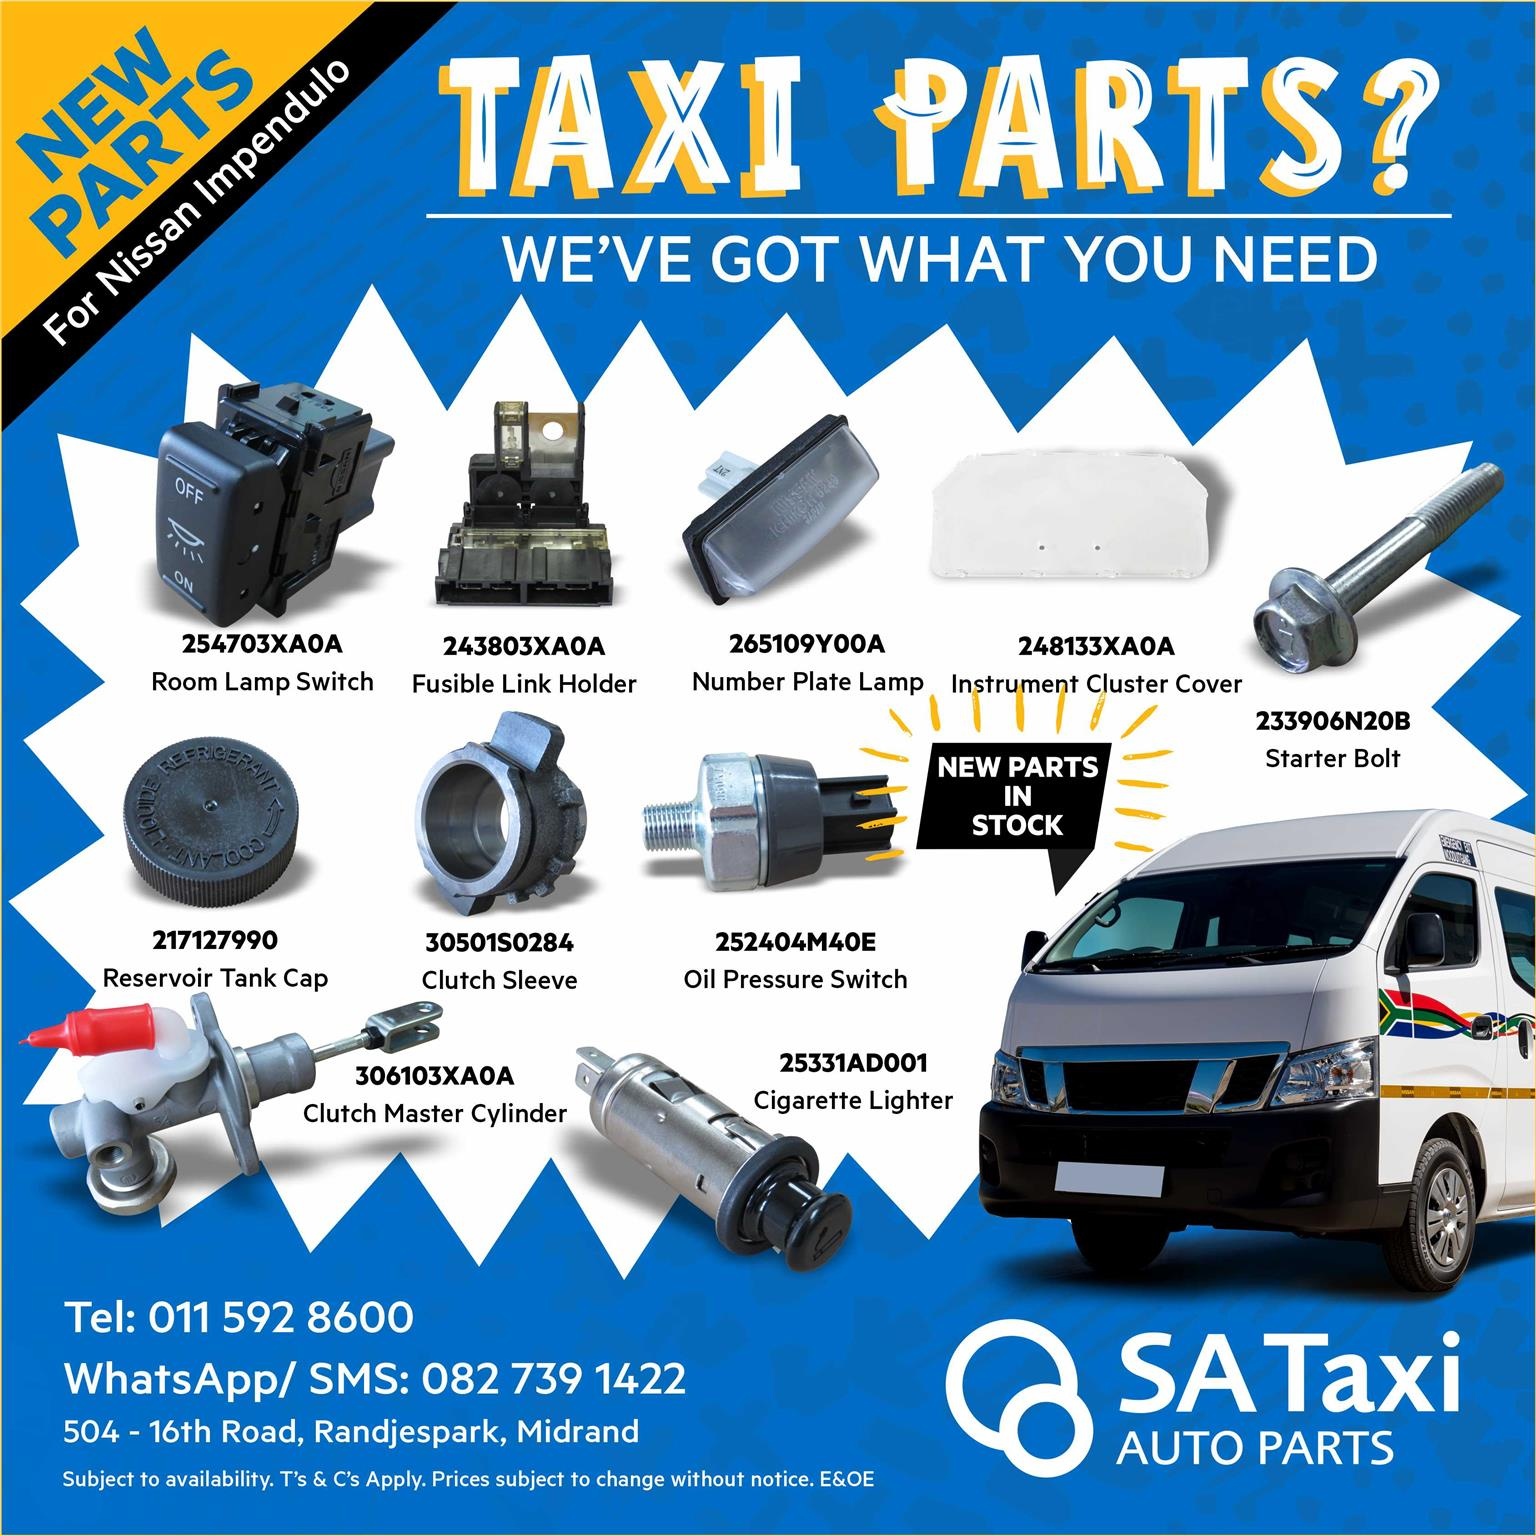 Front Brake Disc - New Parts for Nissan NV350 Impendulo - SA Taxi Auto Parts quality spares